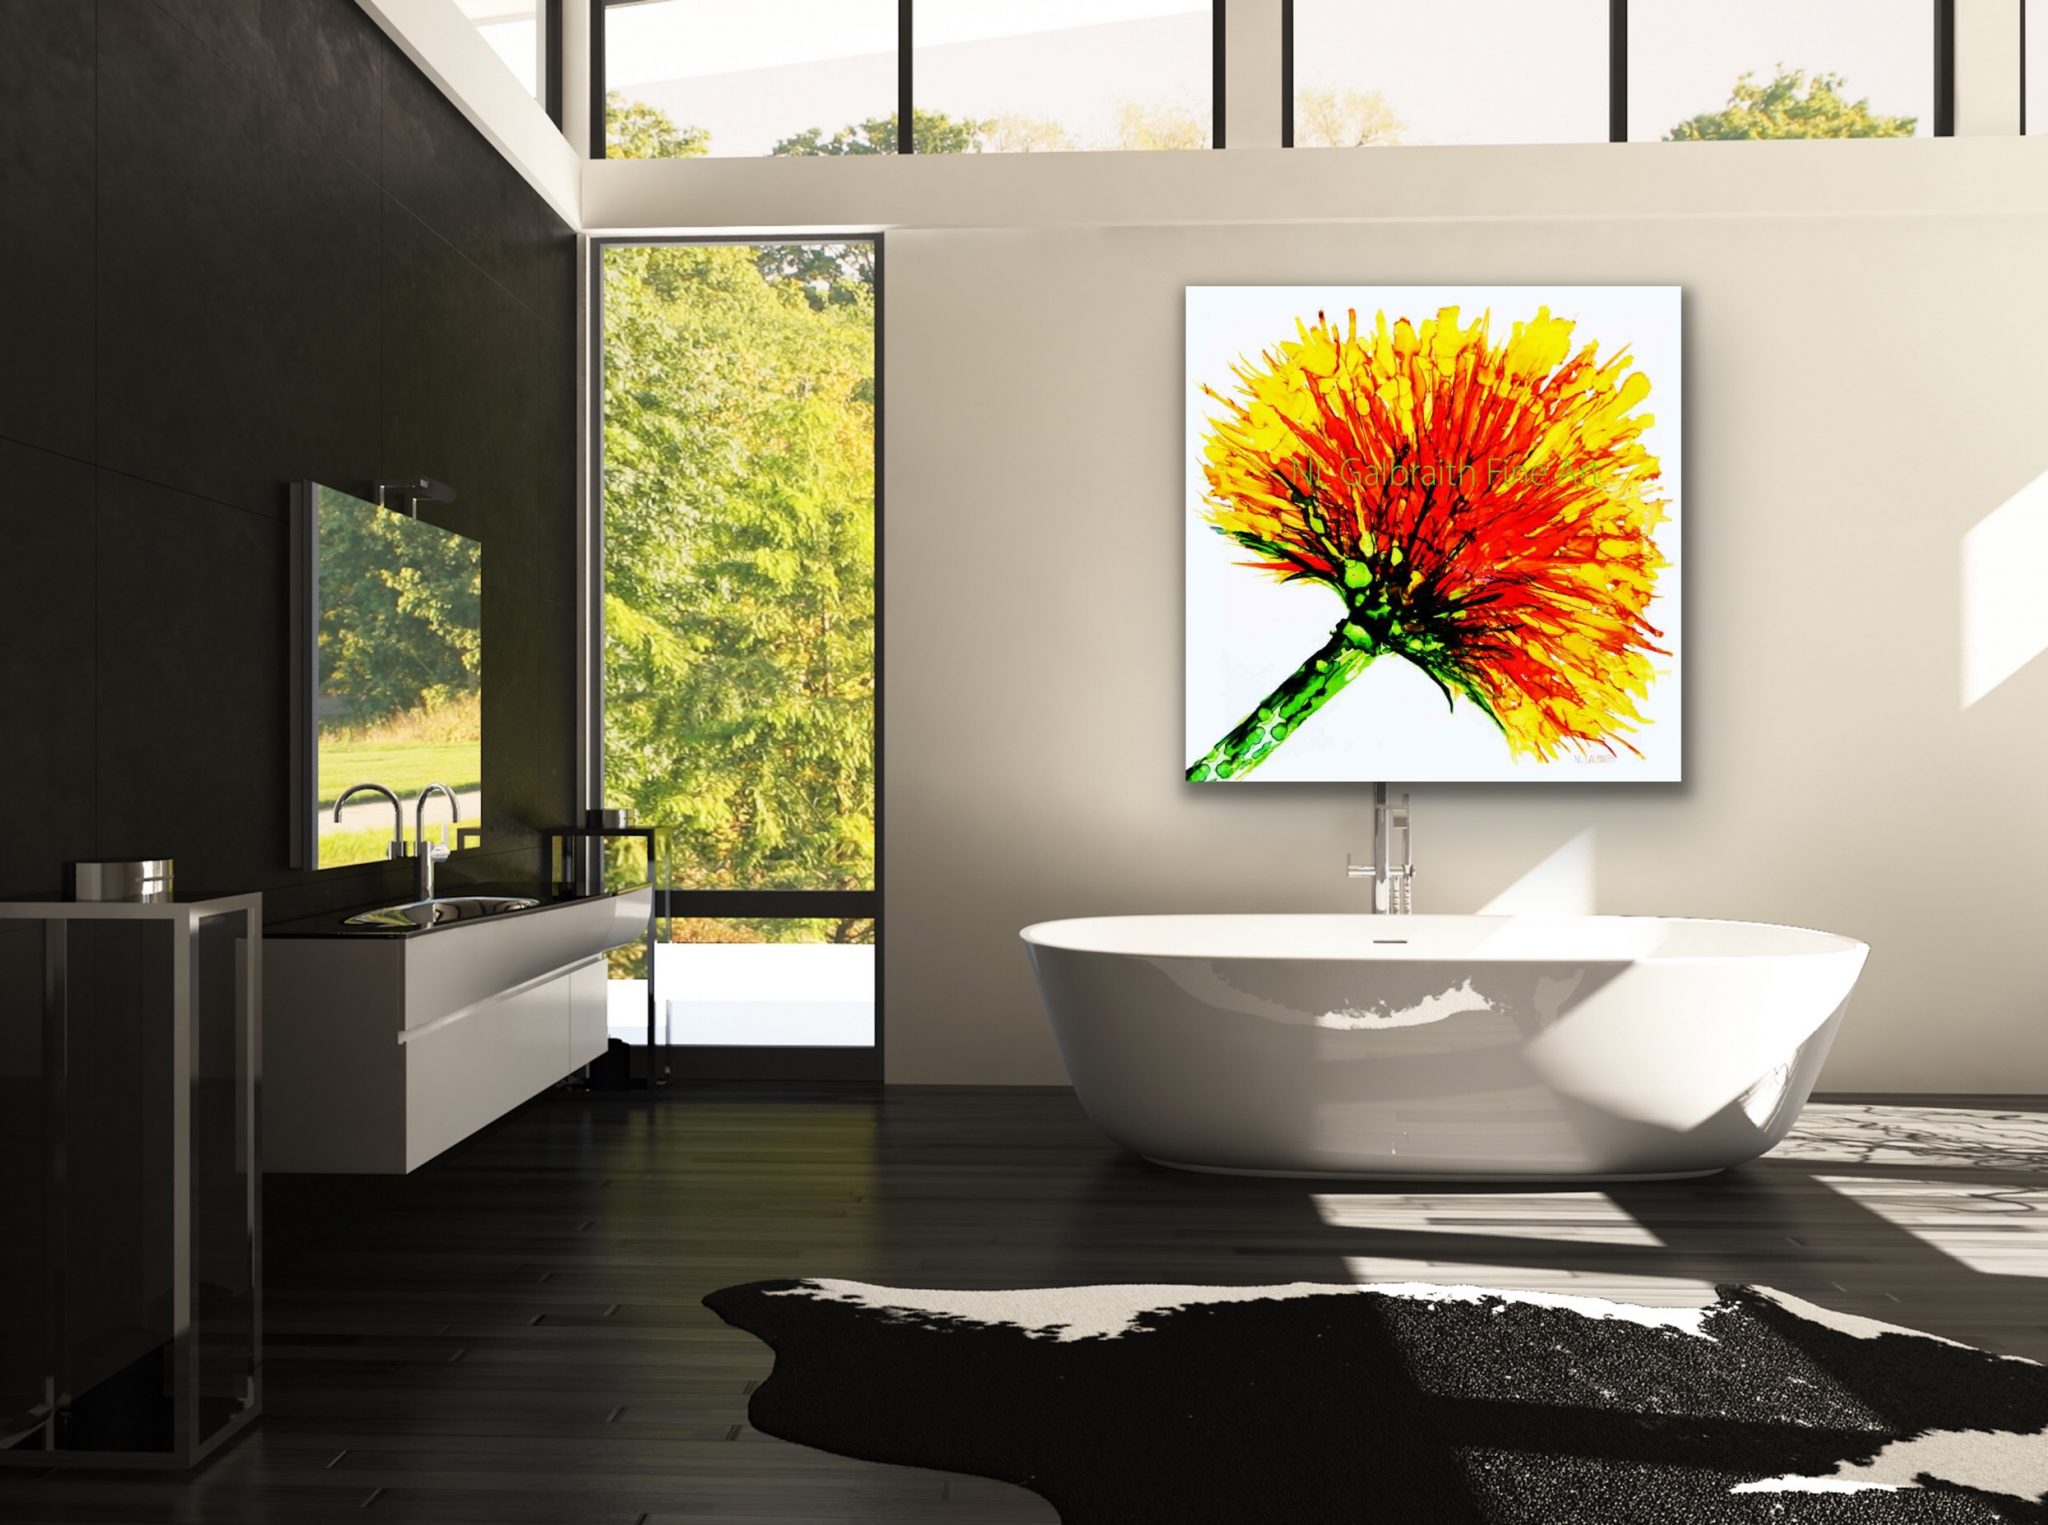 MASTER BATH & SPA ART